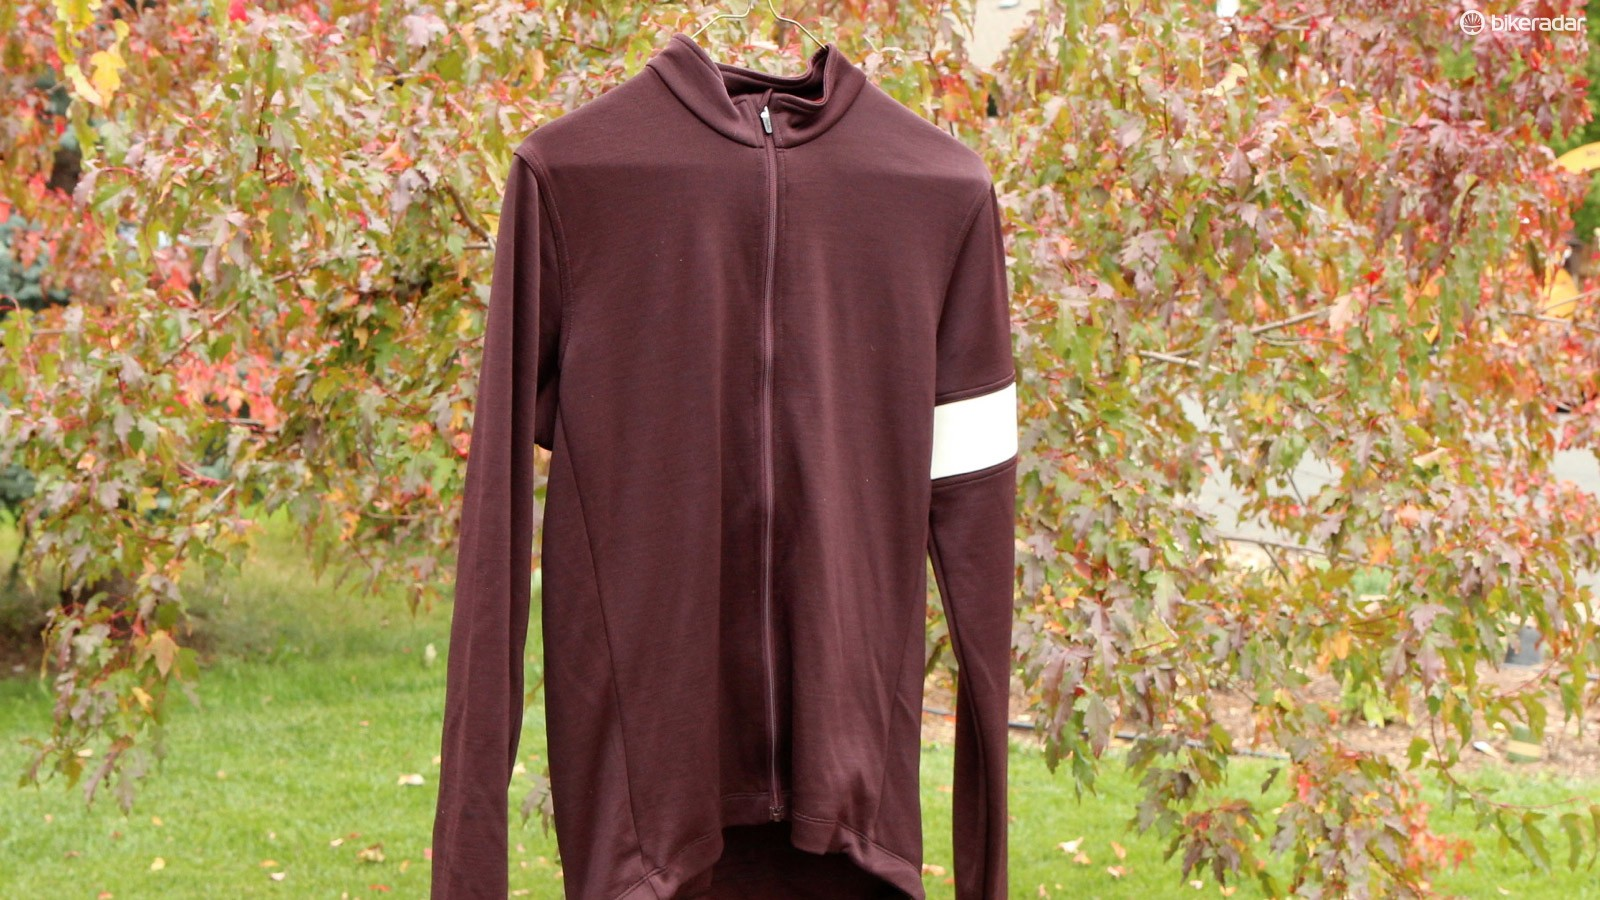 Rapha's Long Sleeve jersey doesn't come in this color this year, but the style and Sportwool construction carry over